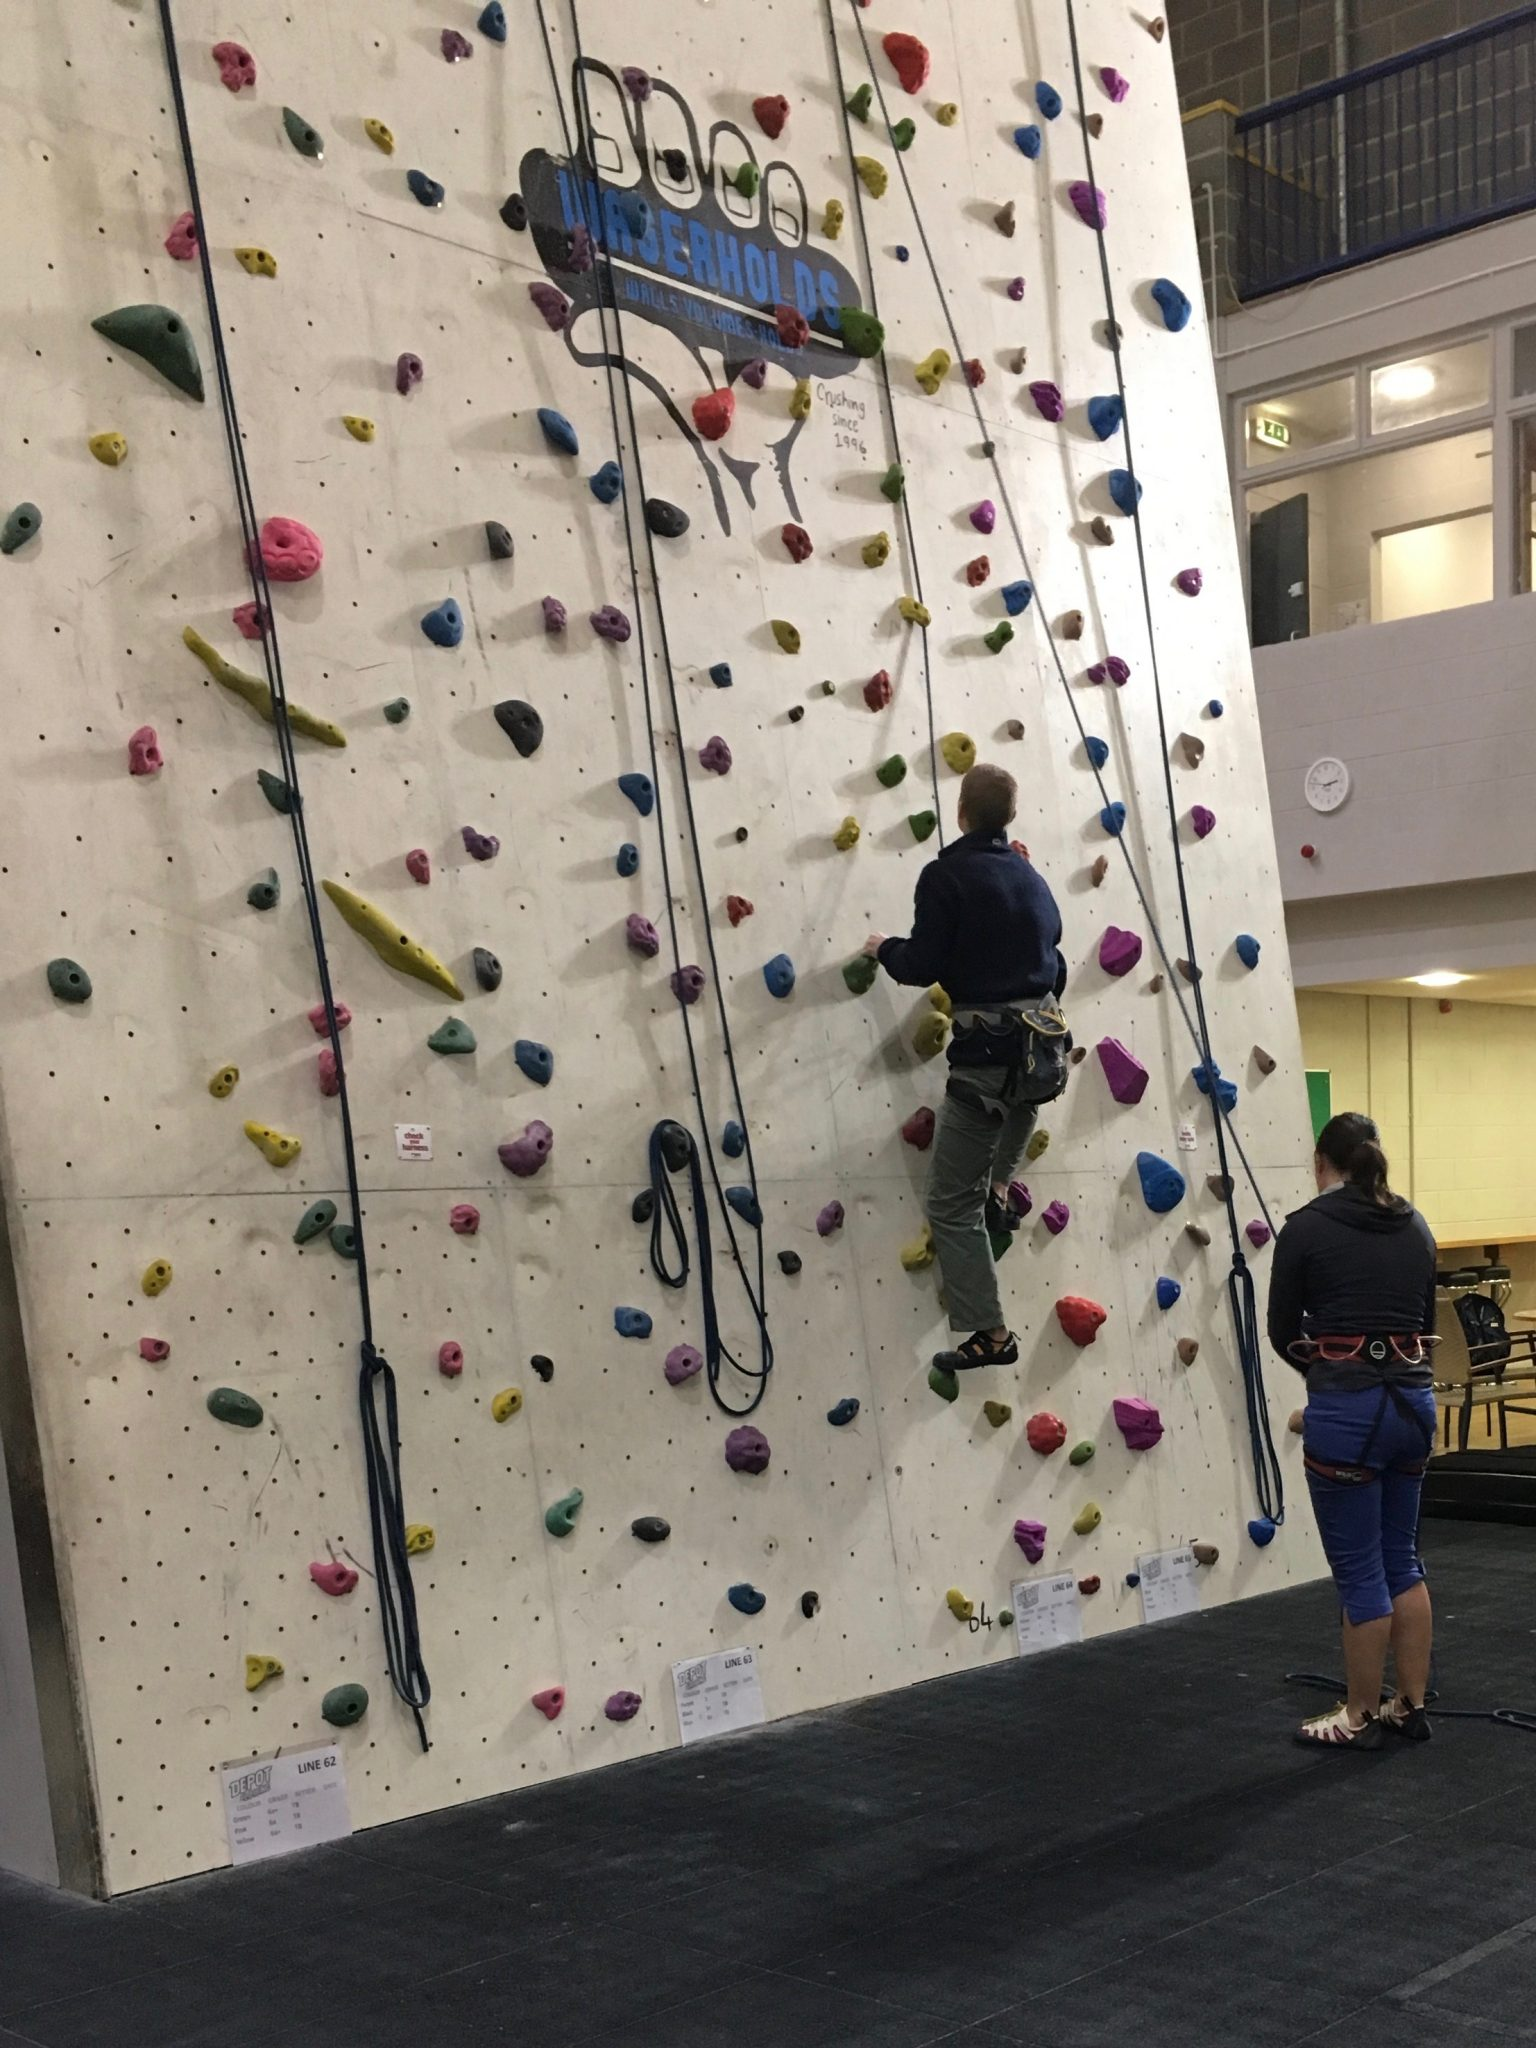 Climbers practising their technique, as you can learn on our climbing courses in Leeds